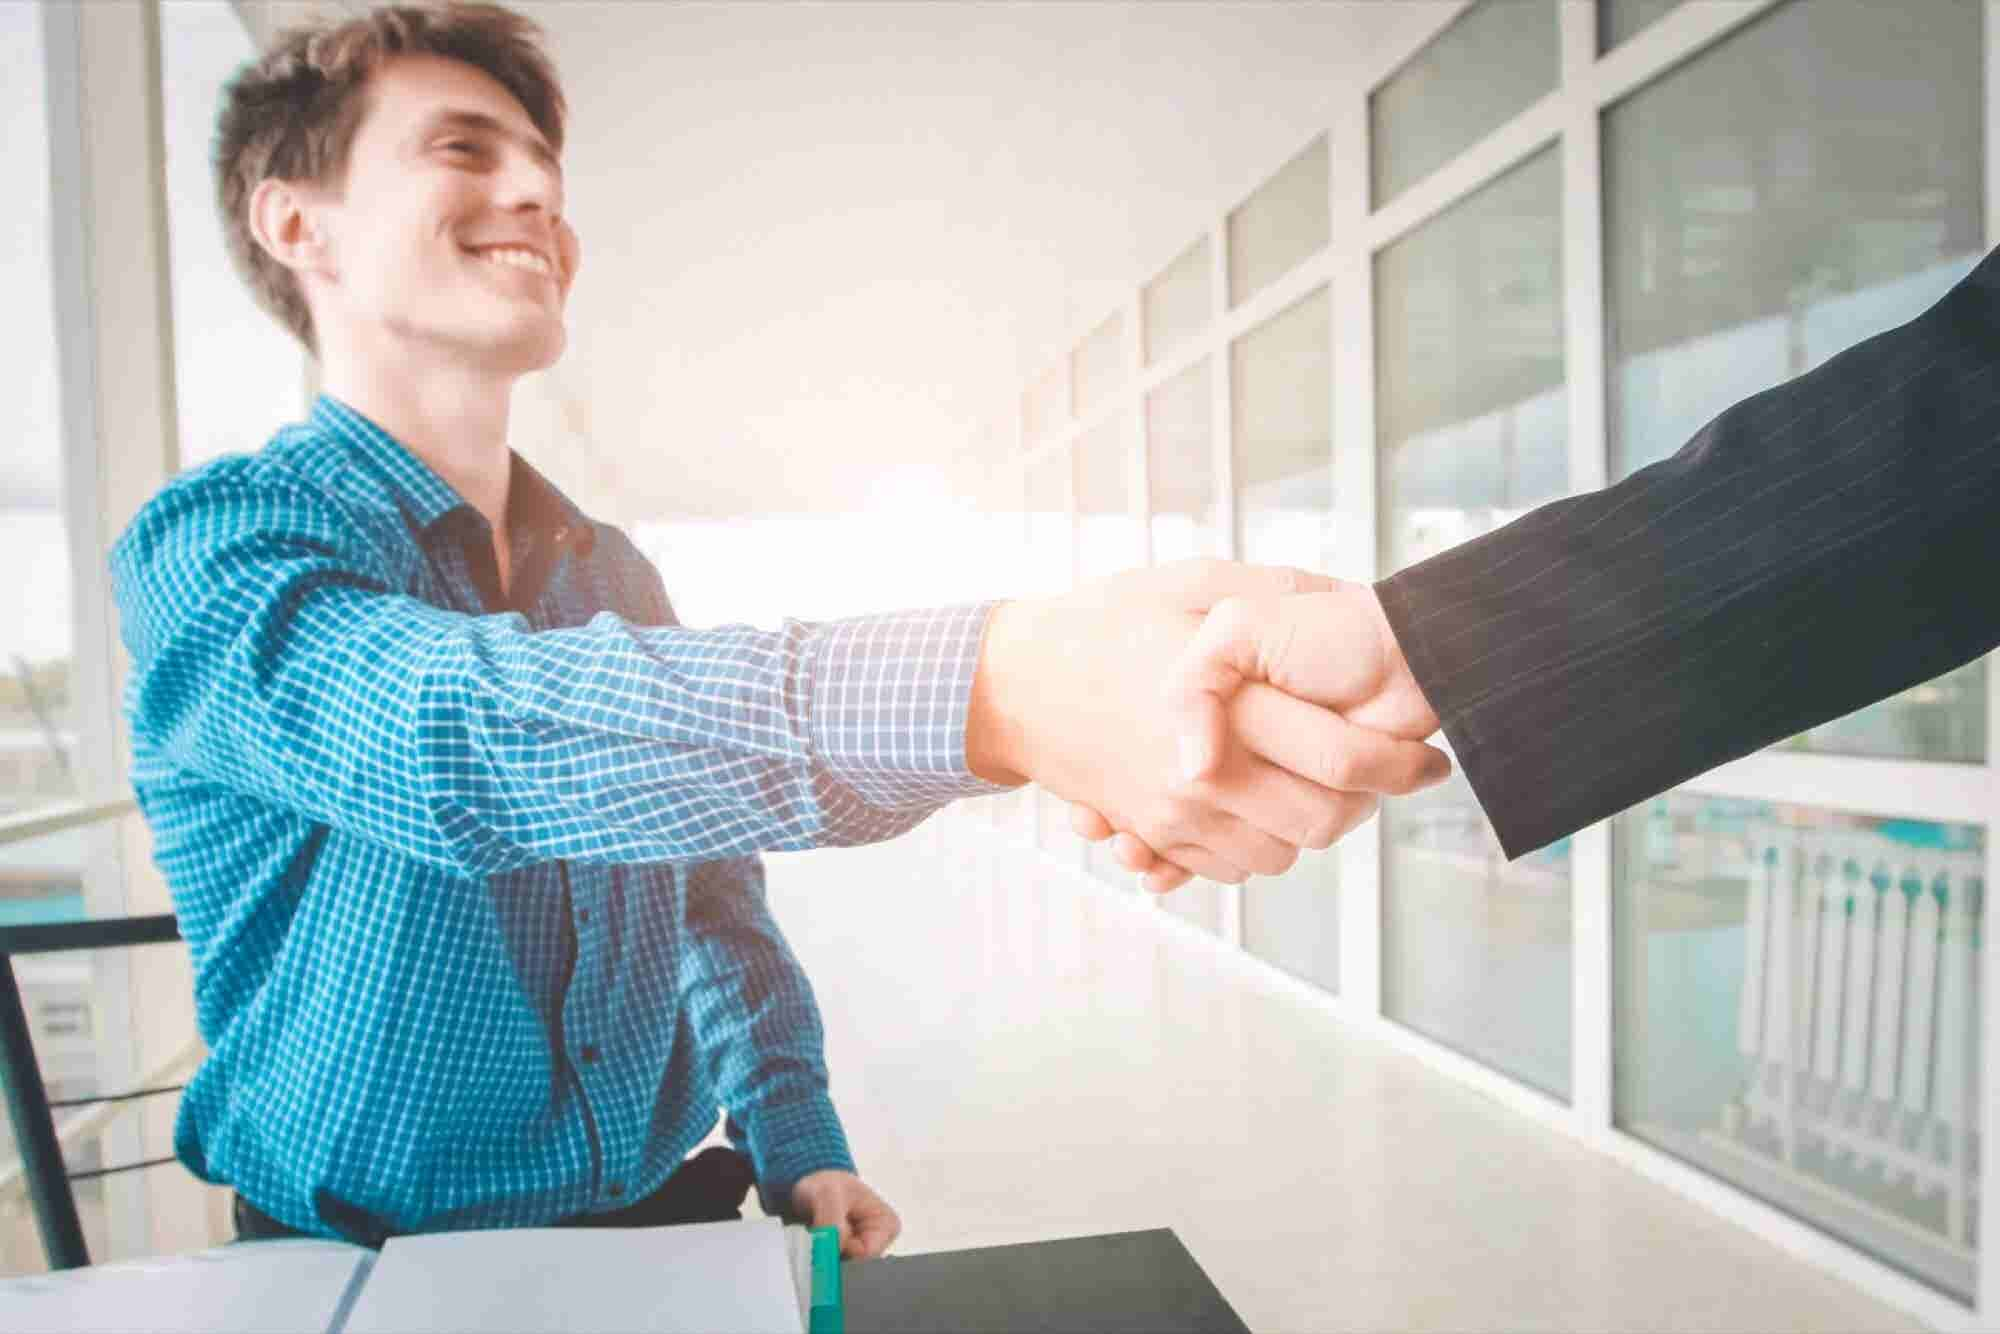 Cracking The Market: How To Build A Successful Franchise Business